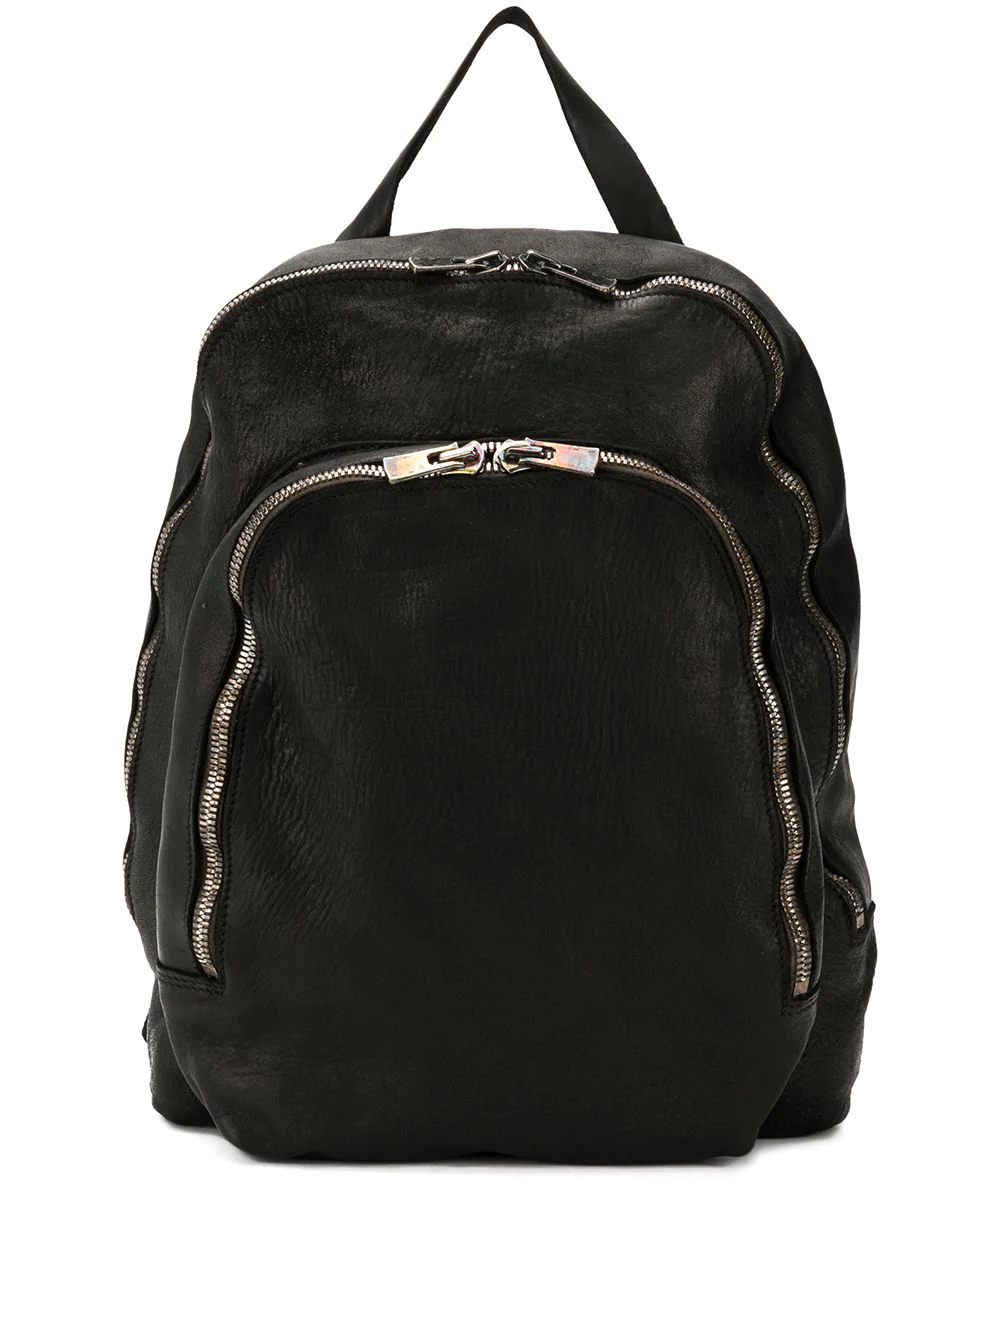 LEATHER DOUBLE ZIPPED BACKPACK